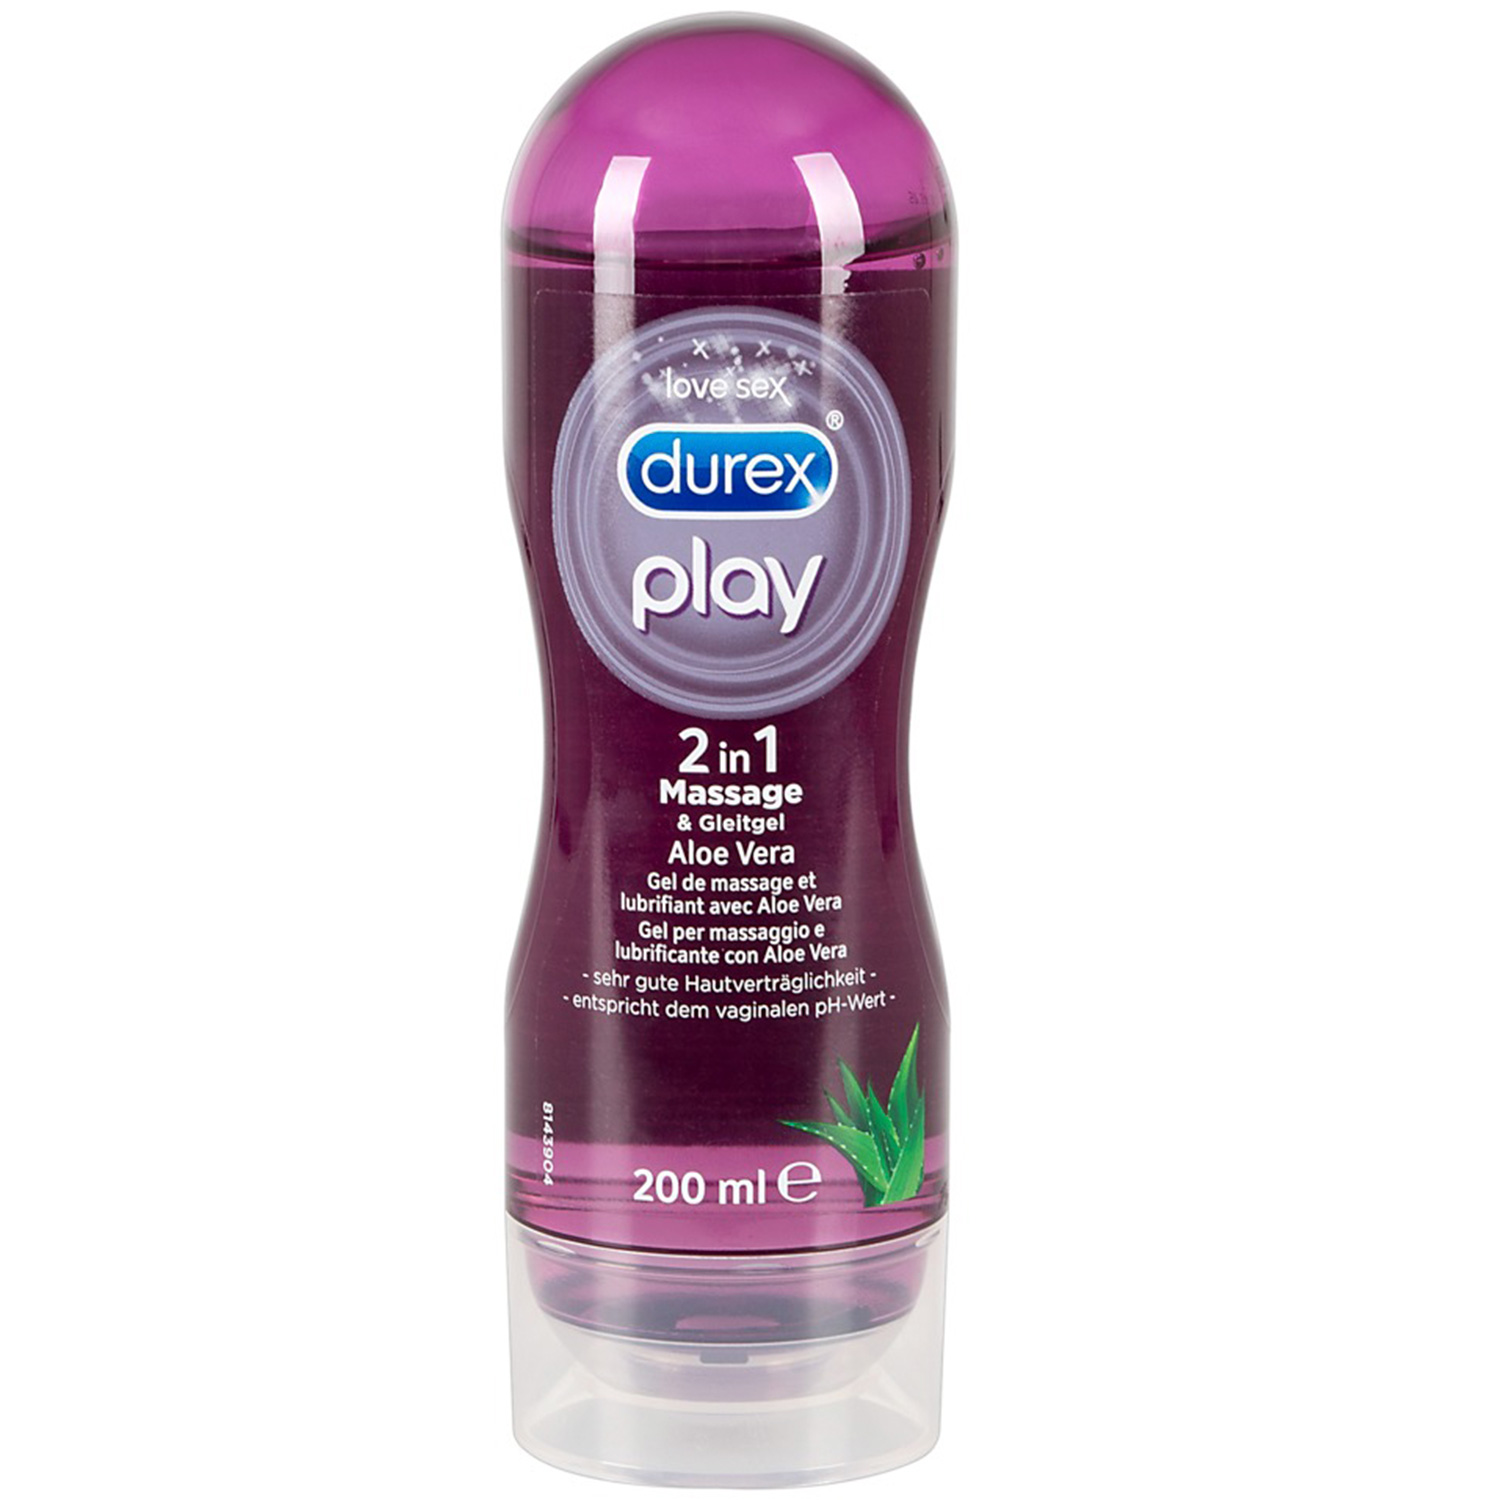 Durex Play 2-i-1 Massageolie og Glidecreme 200 ml